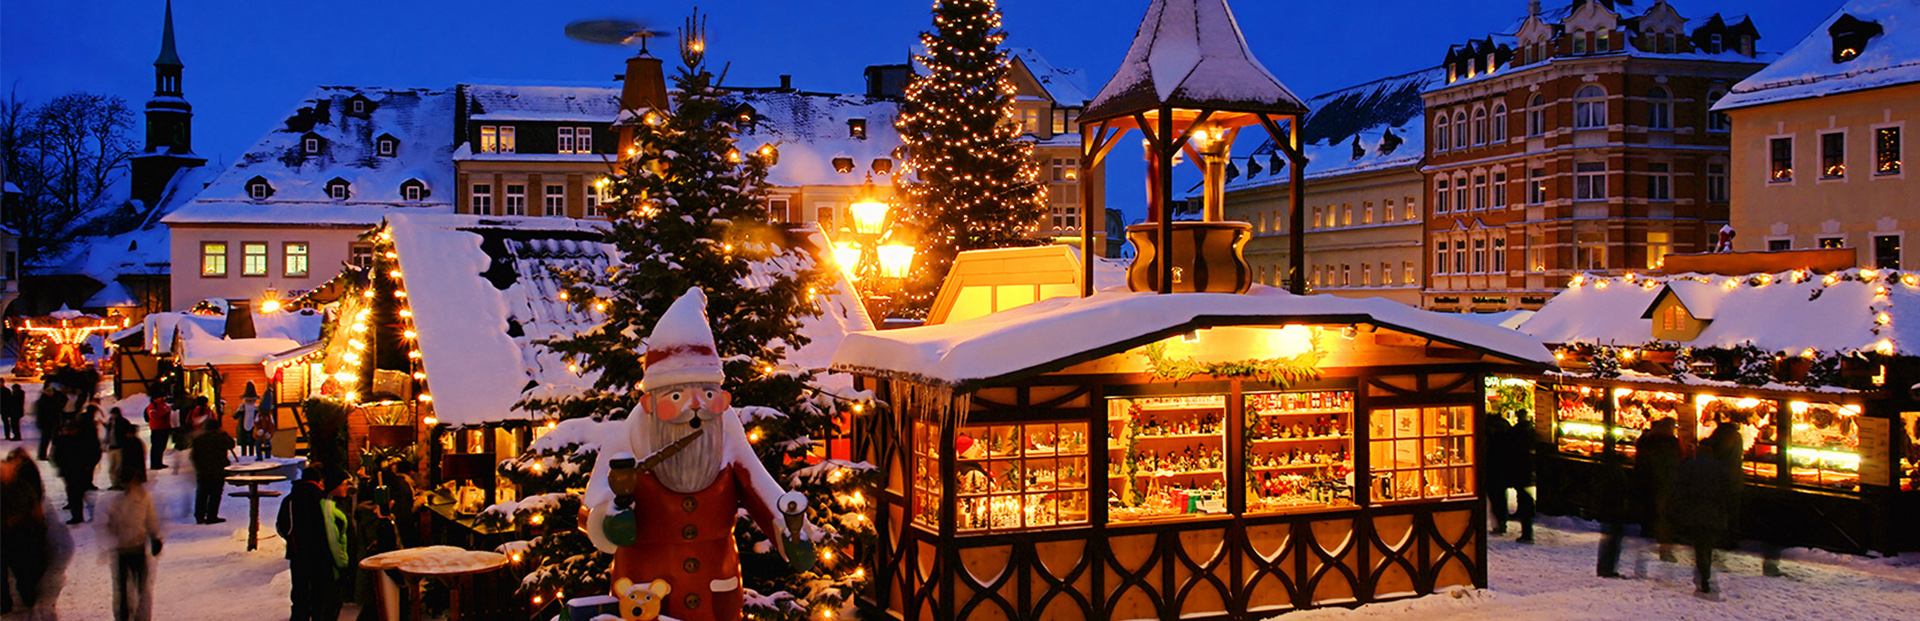 slider_0002_2015-Europe-Christmas-Markets